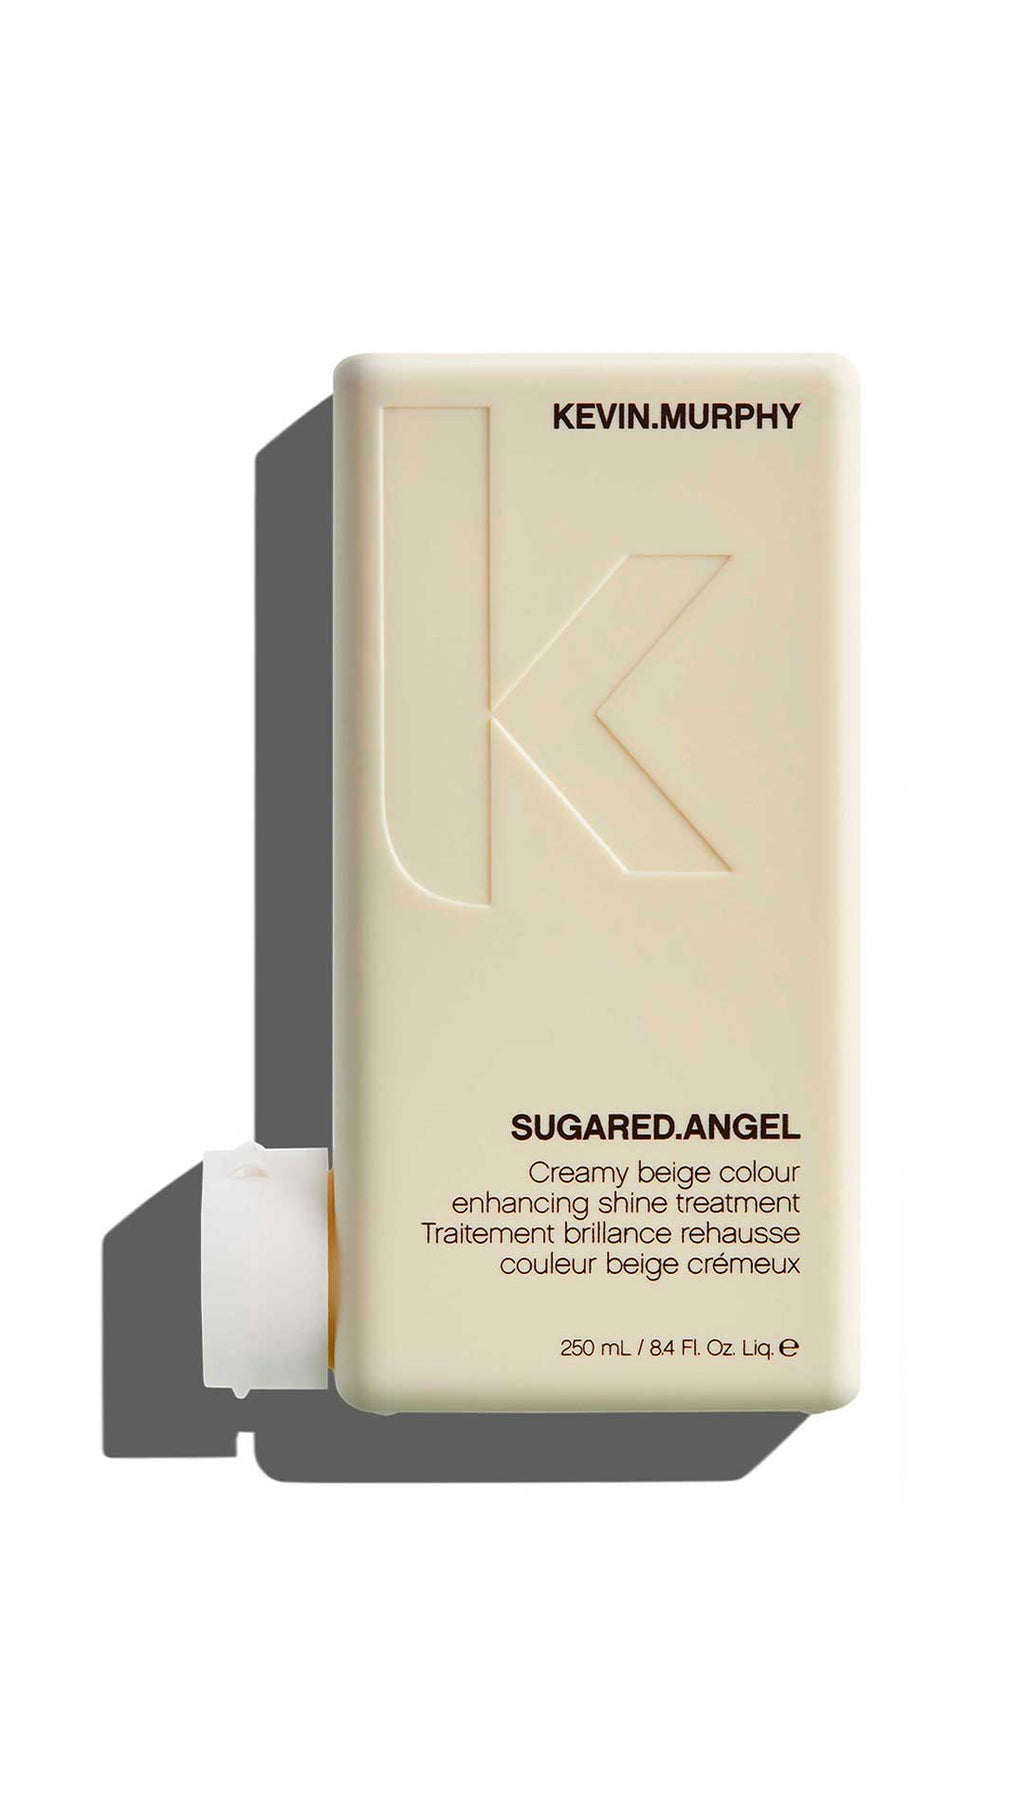 SUGARED ANGEL - KEVIN MURPHY